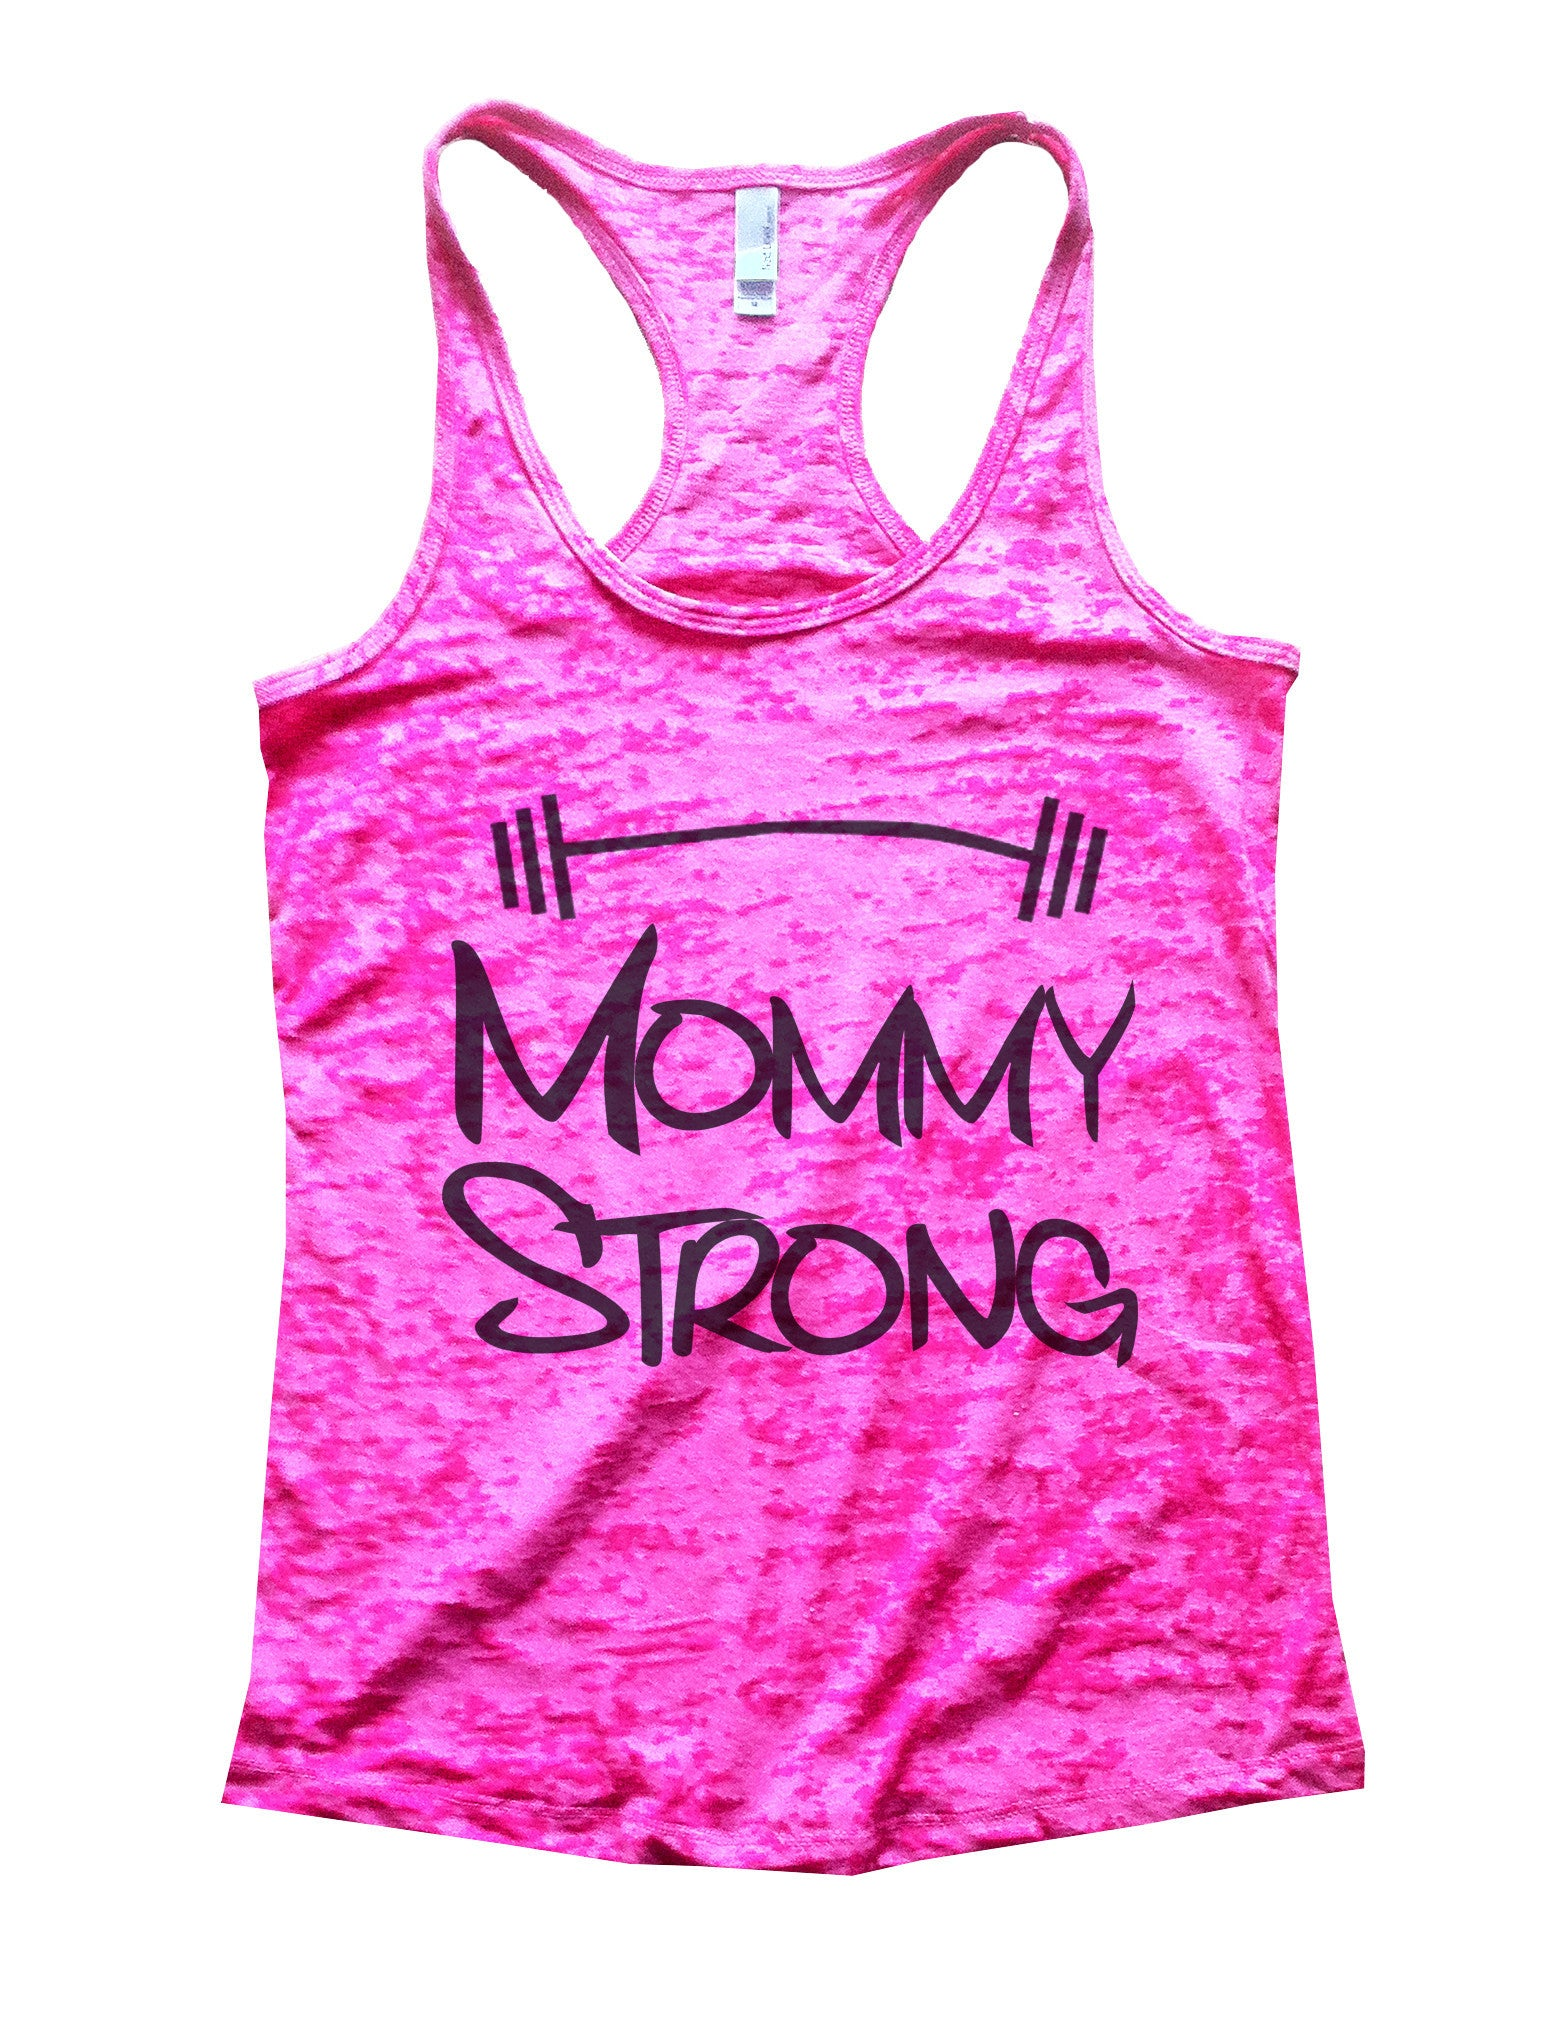 Mommy Strong Mothers Motivational Burnout Tank Top By BurnoutTankTops.com - 515 - Funny Shirts Tank Tops Burnouts and Triblends  - 3